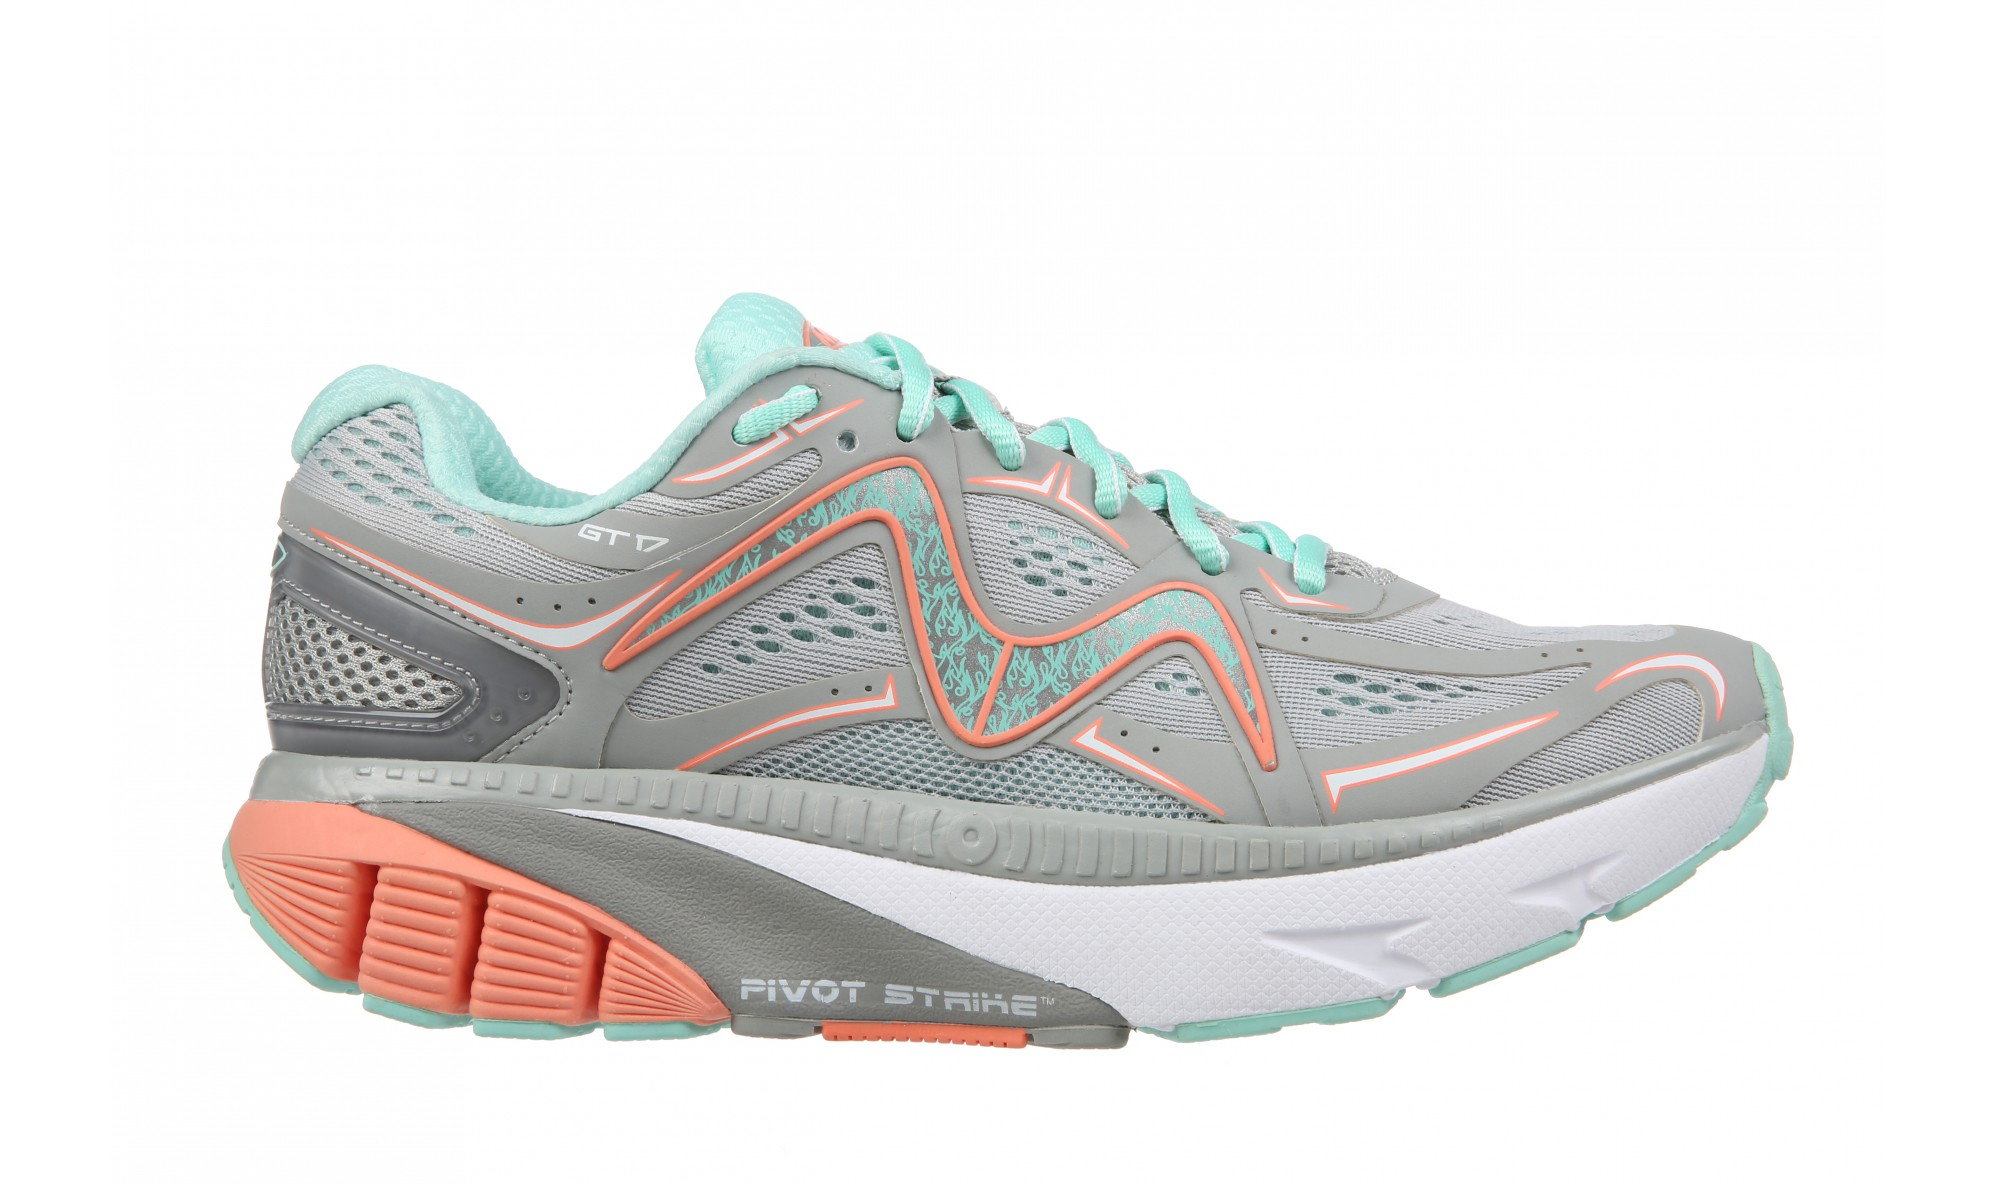 MBT GT 17 Women's Gray / Teal / Peach / White